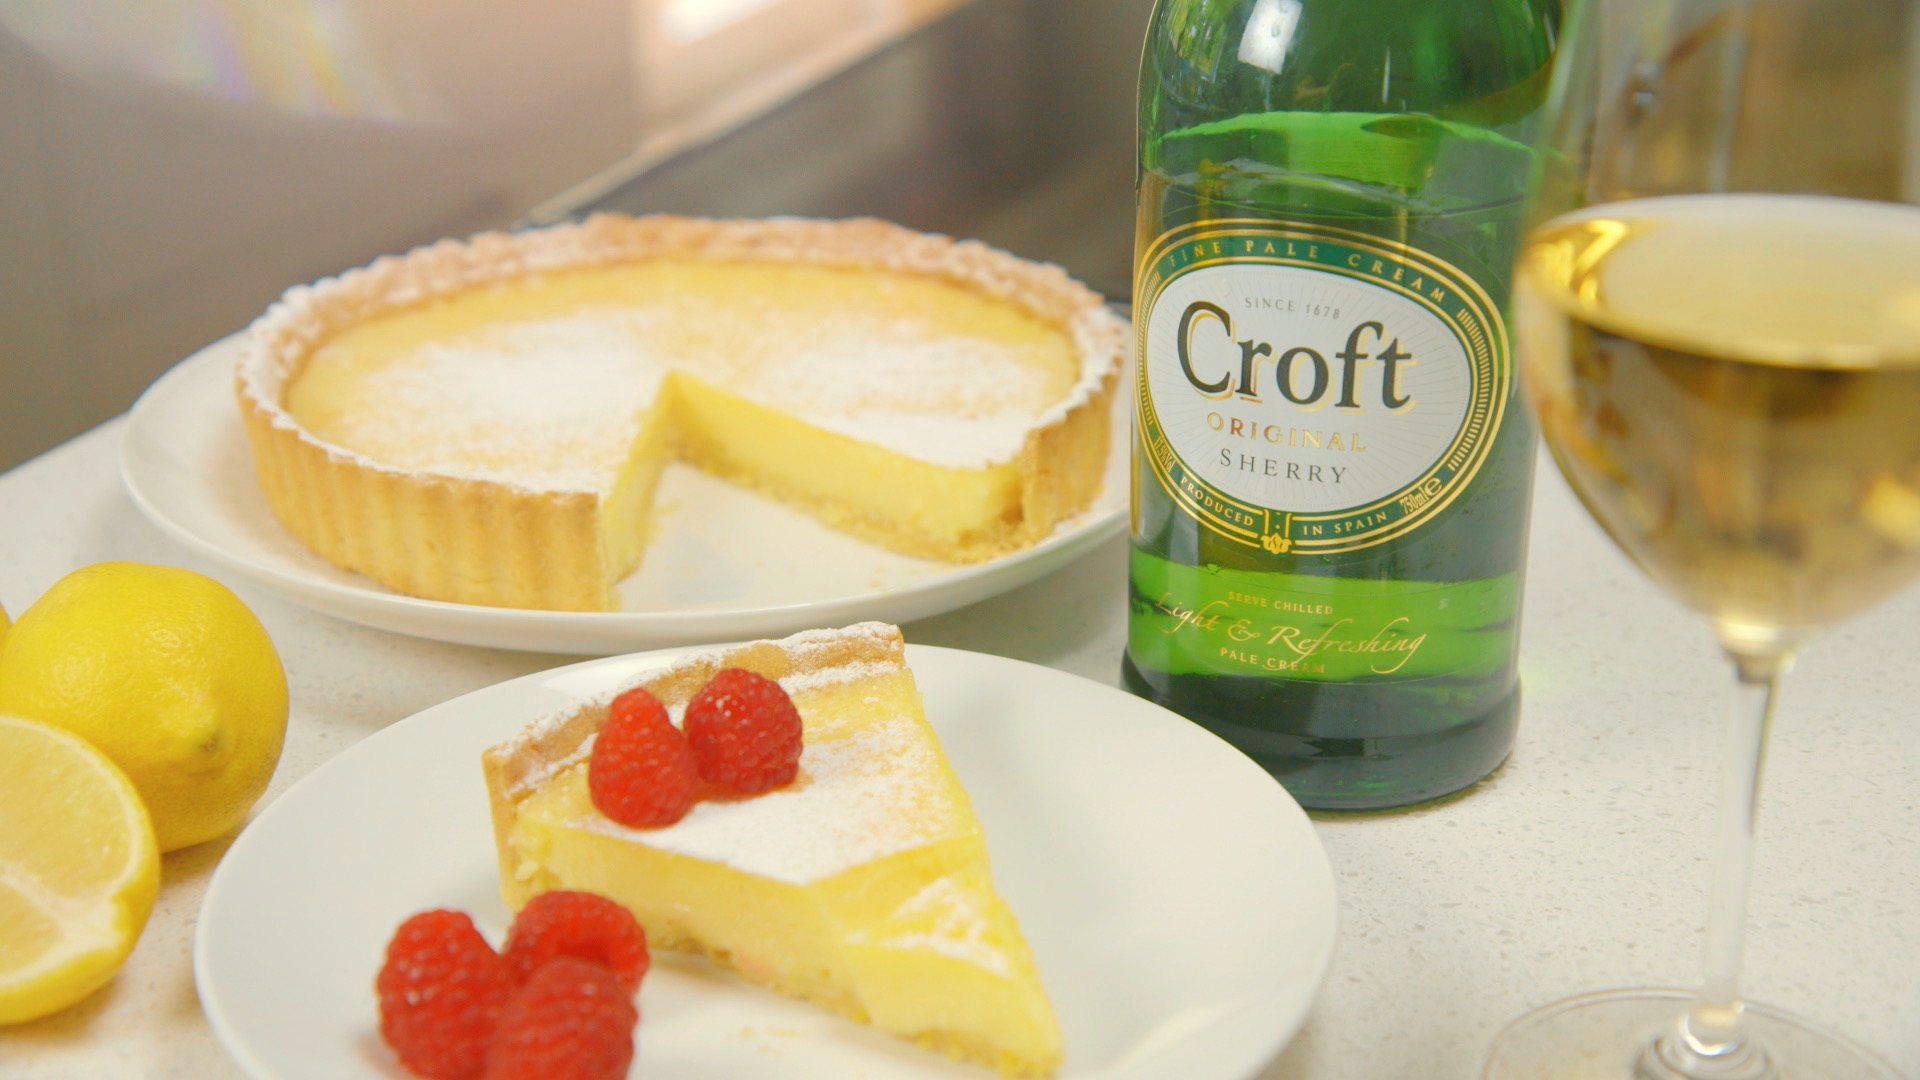 Croft Lemon Tart